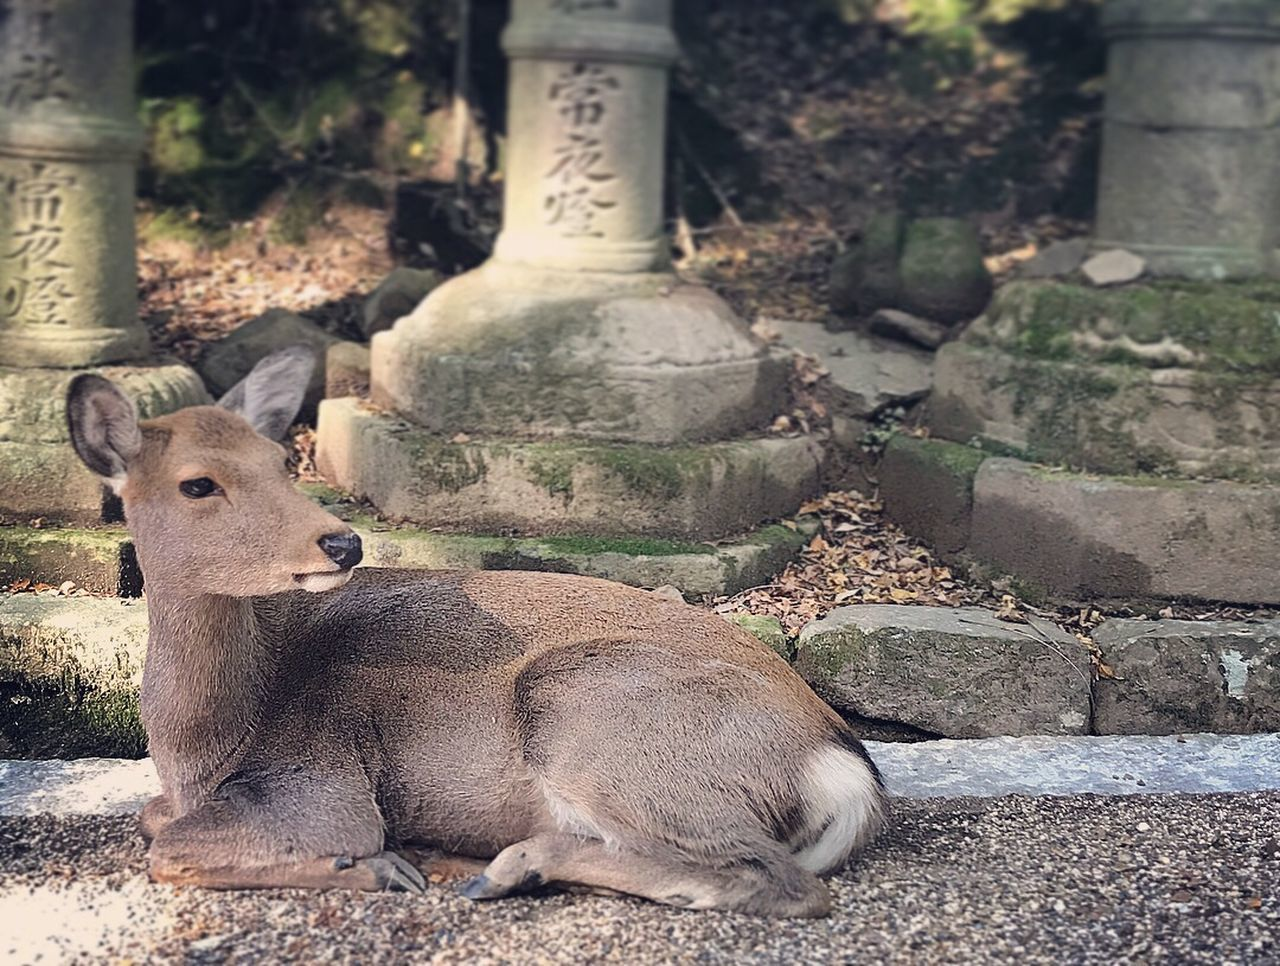 mammal, animal themes, animal, vertebrate, day, relaxation, no people, animal wildlife, one animal, animals in the wild, nature, focus on foreground, domestic animals, outdoors, solid, pets, field, deer, herbivorous